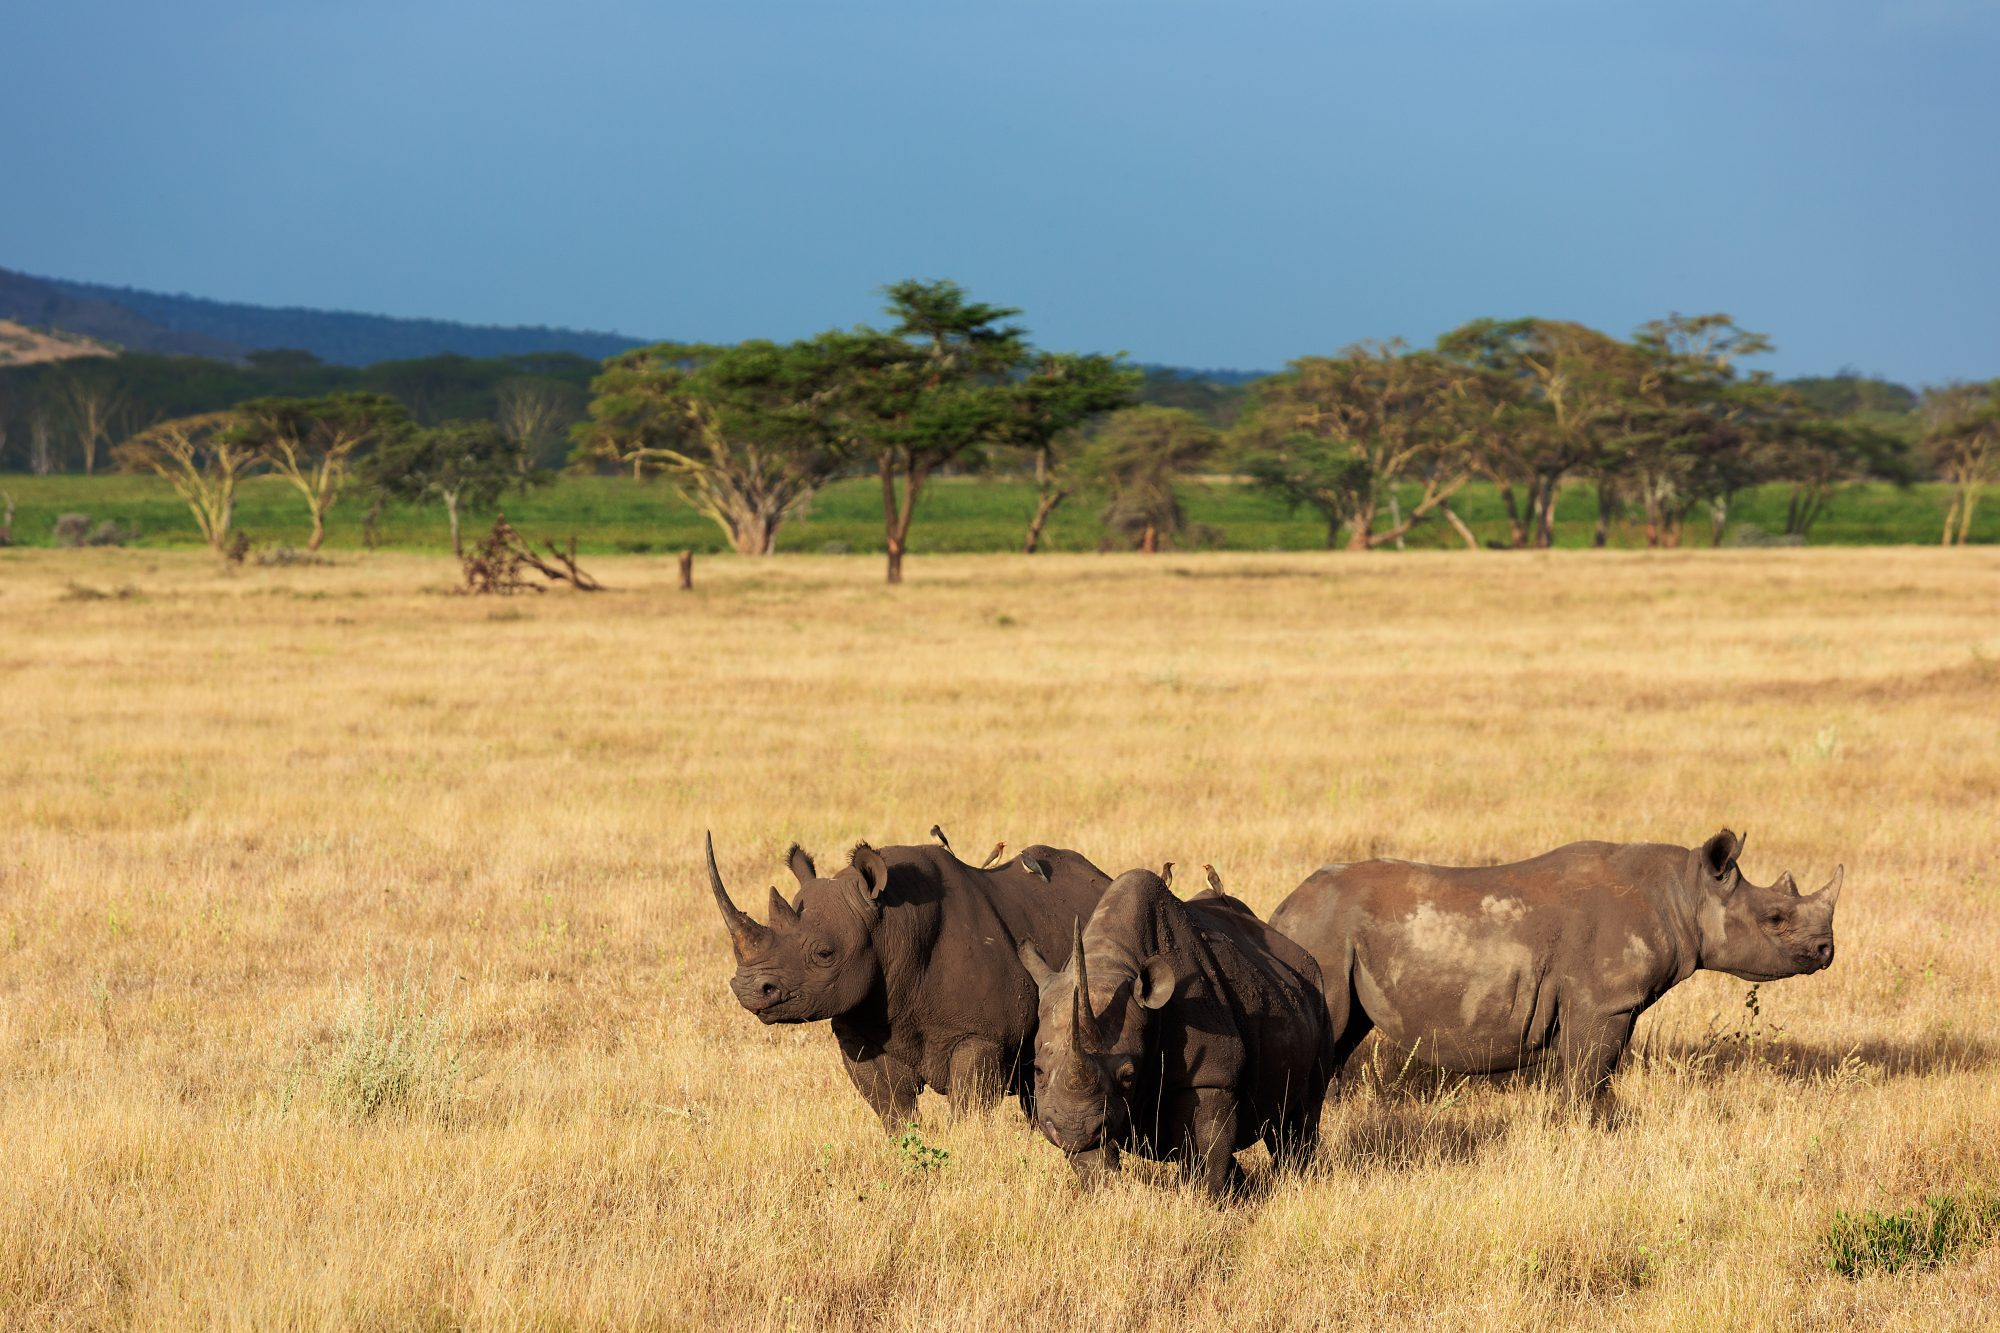 The Lewa Wildlife Conservancy in Kenya is home to 165 black and white rhinos.